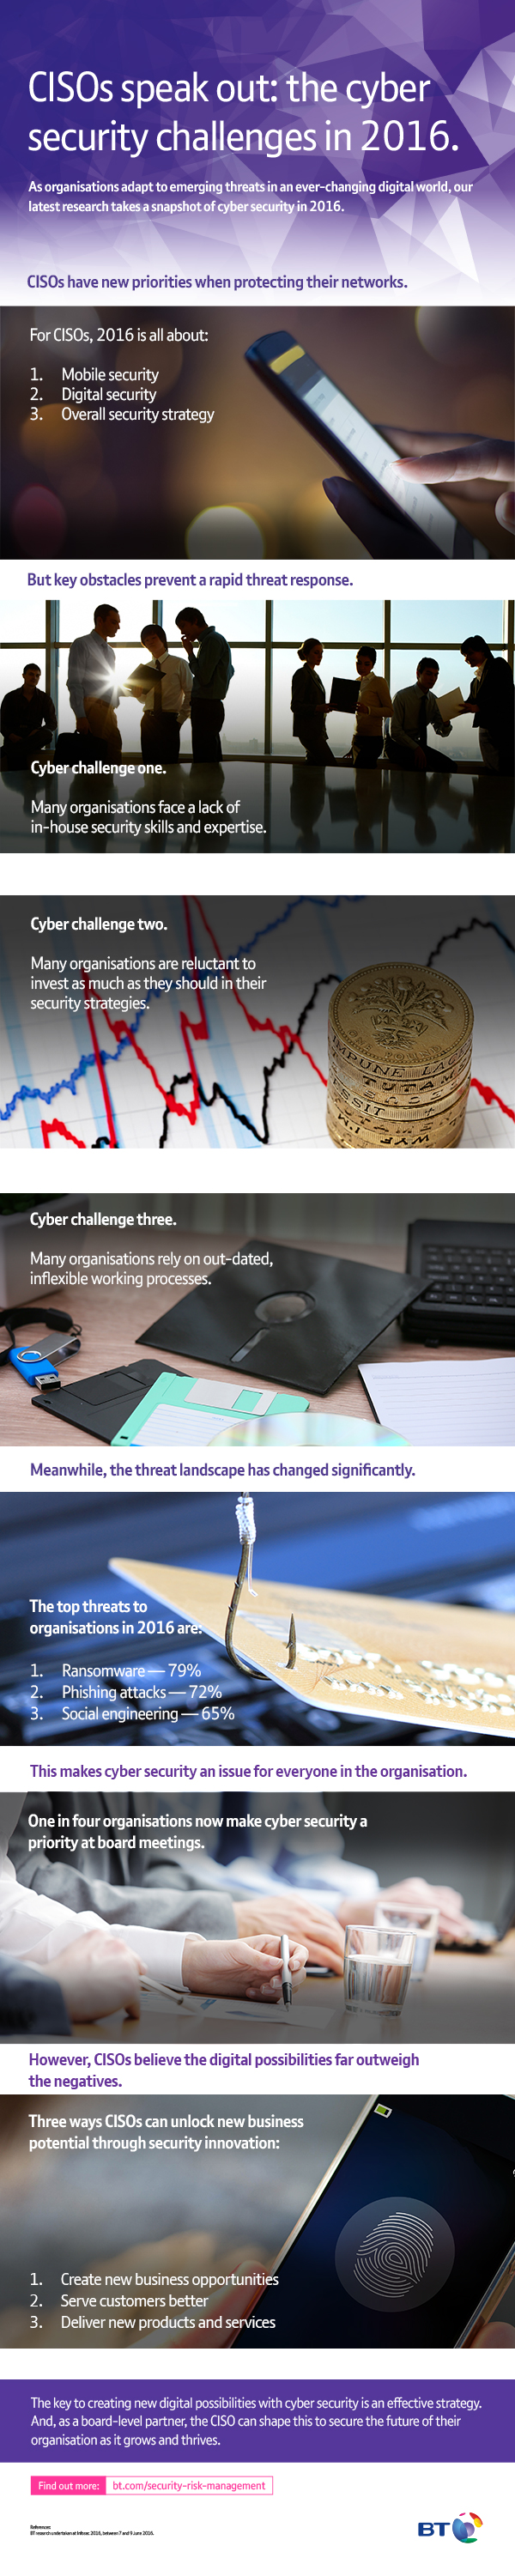 Infosec CISO research infographic from BT